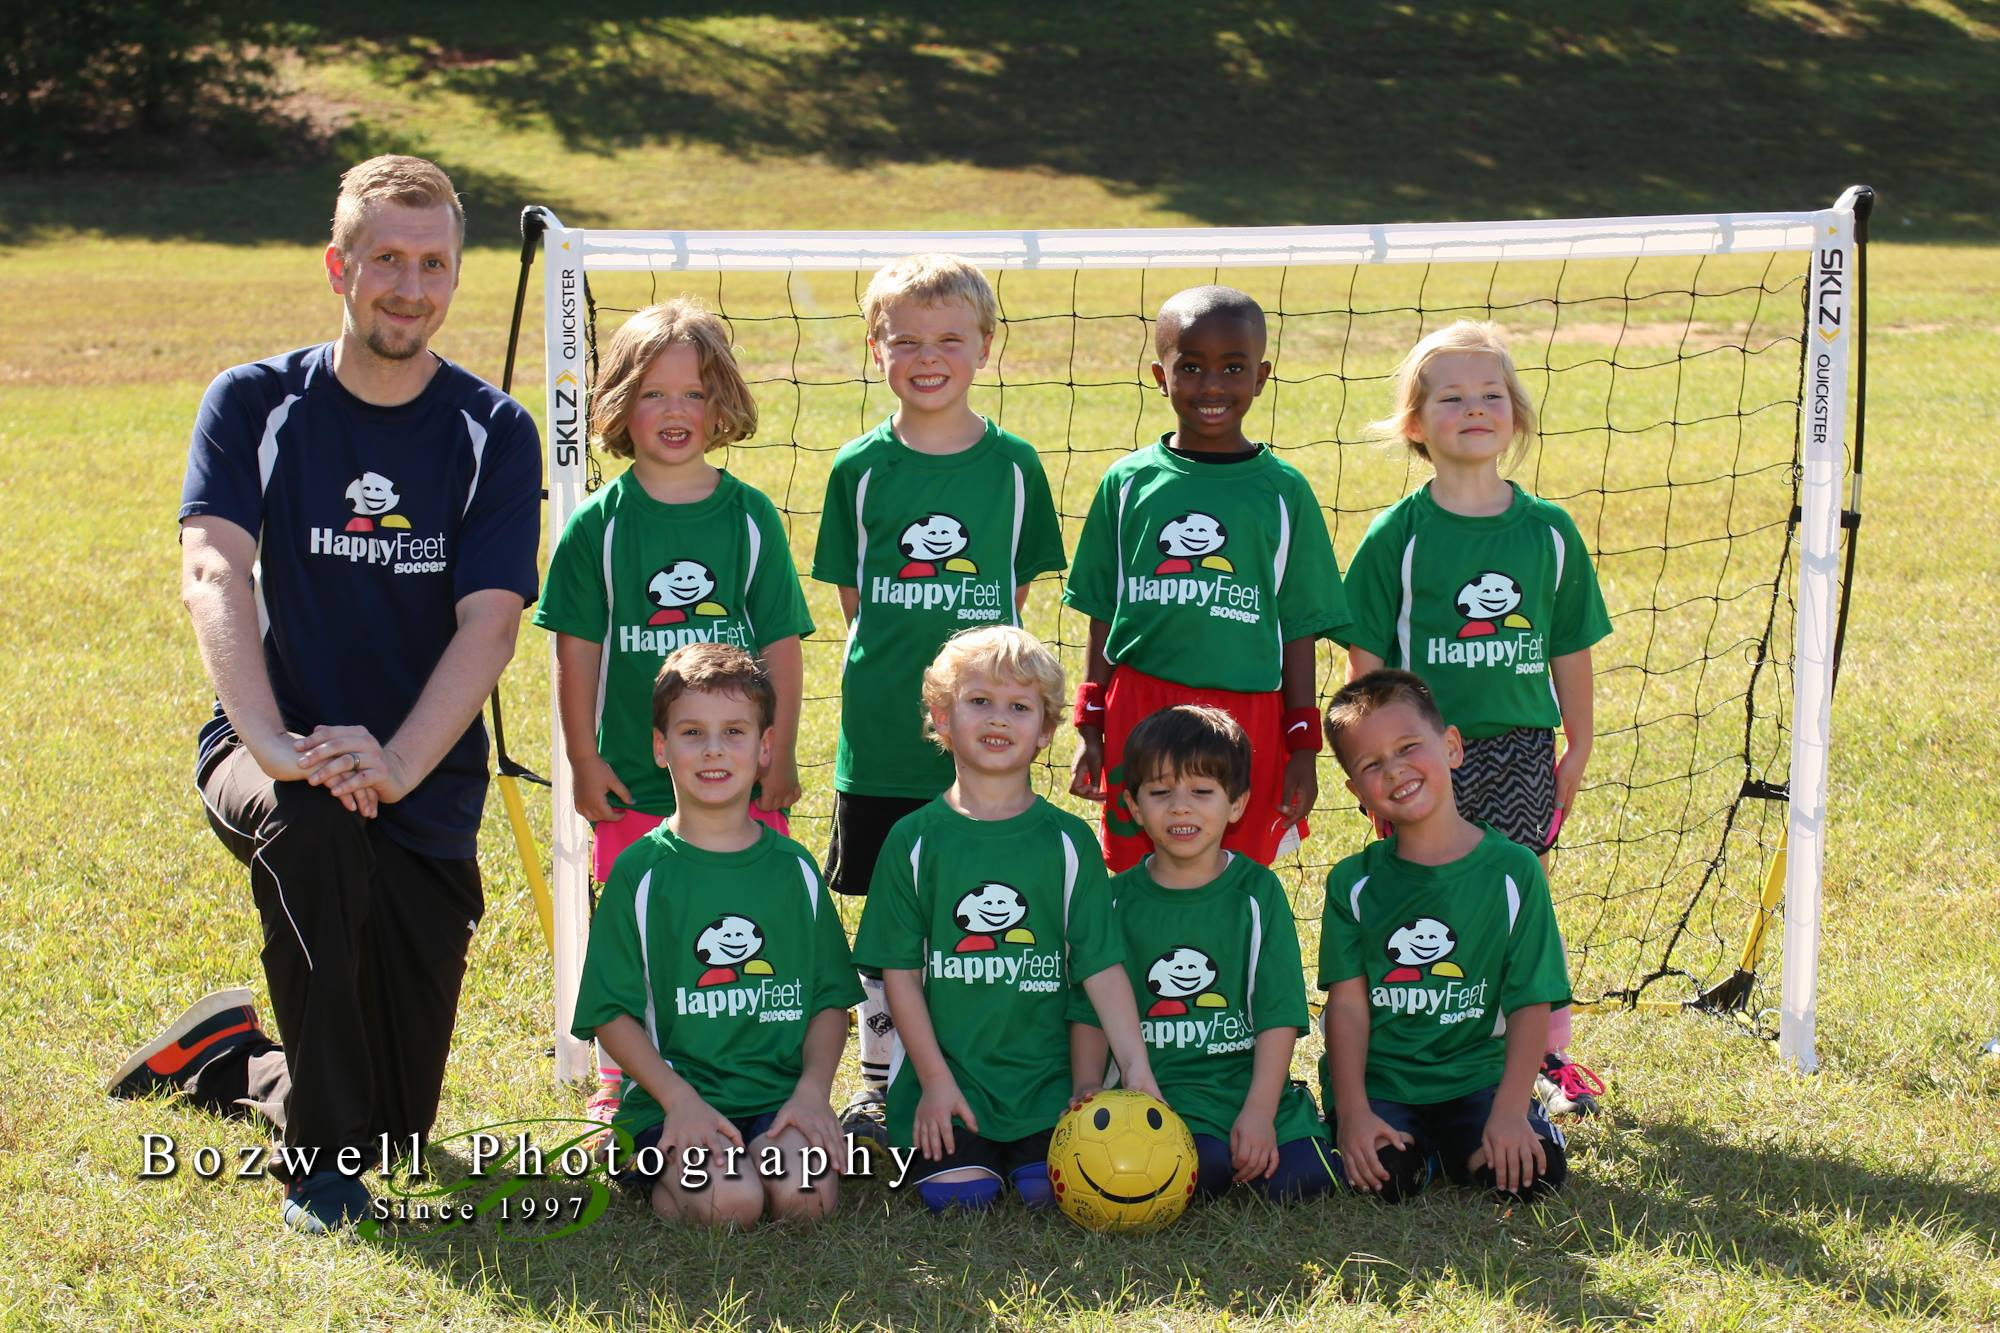 Summer Mini League at St. Andrews Park in West Ashley - Who: Boys and Girls Ages 2-6What: Each session is 45 min- 1 hour long and consists of a 30 minute